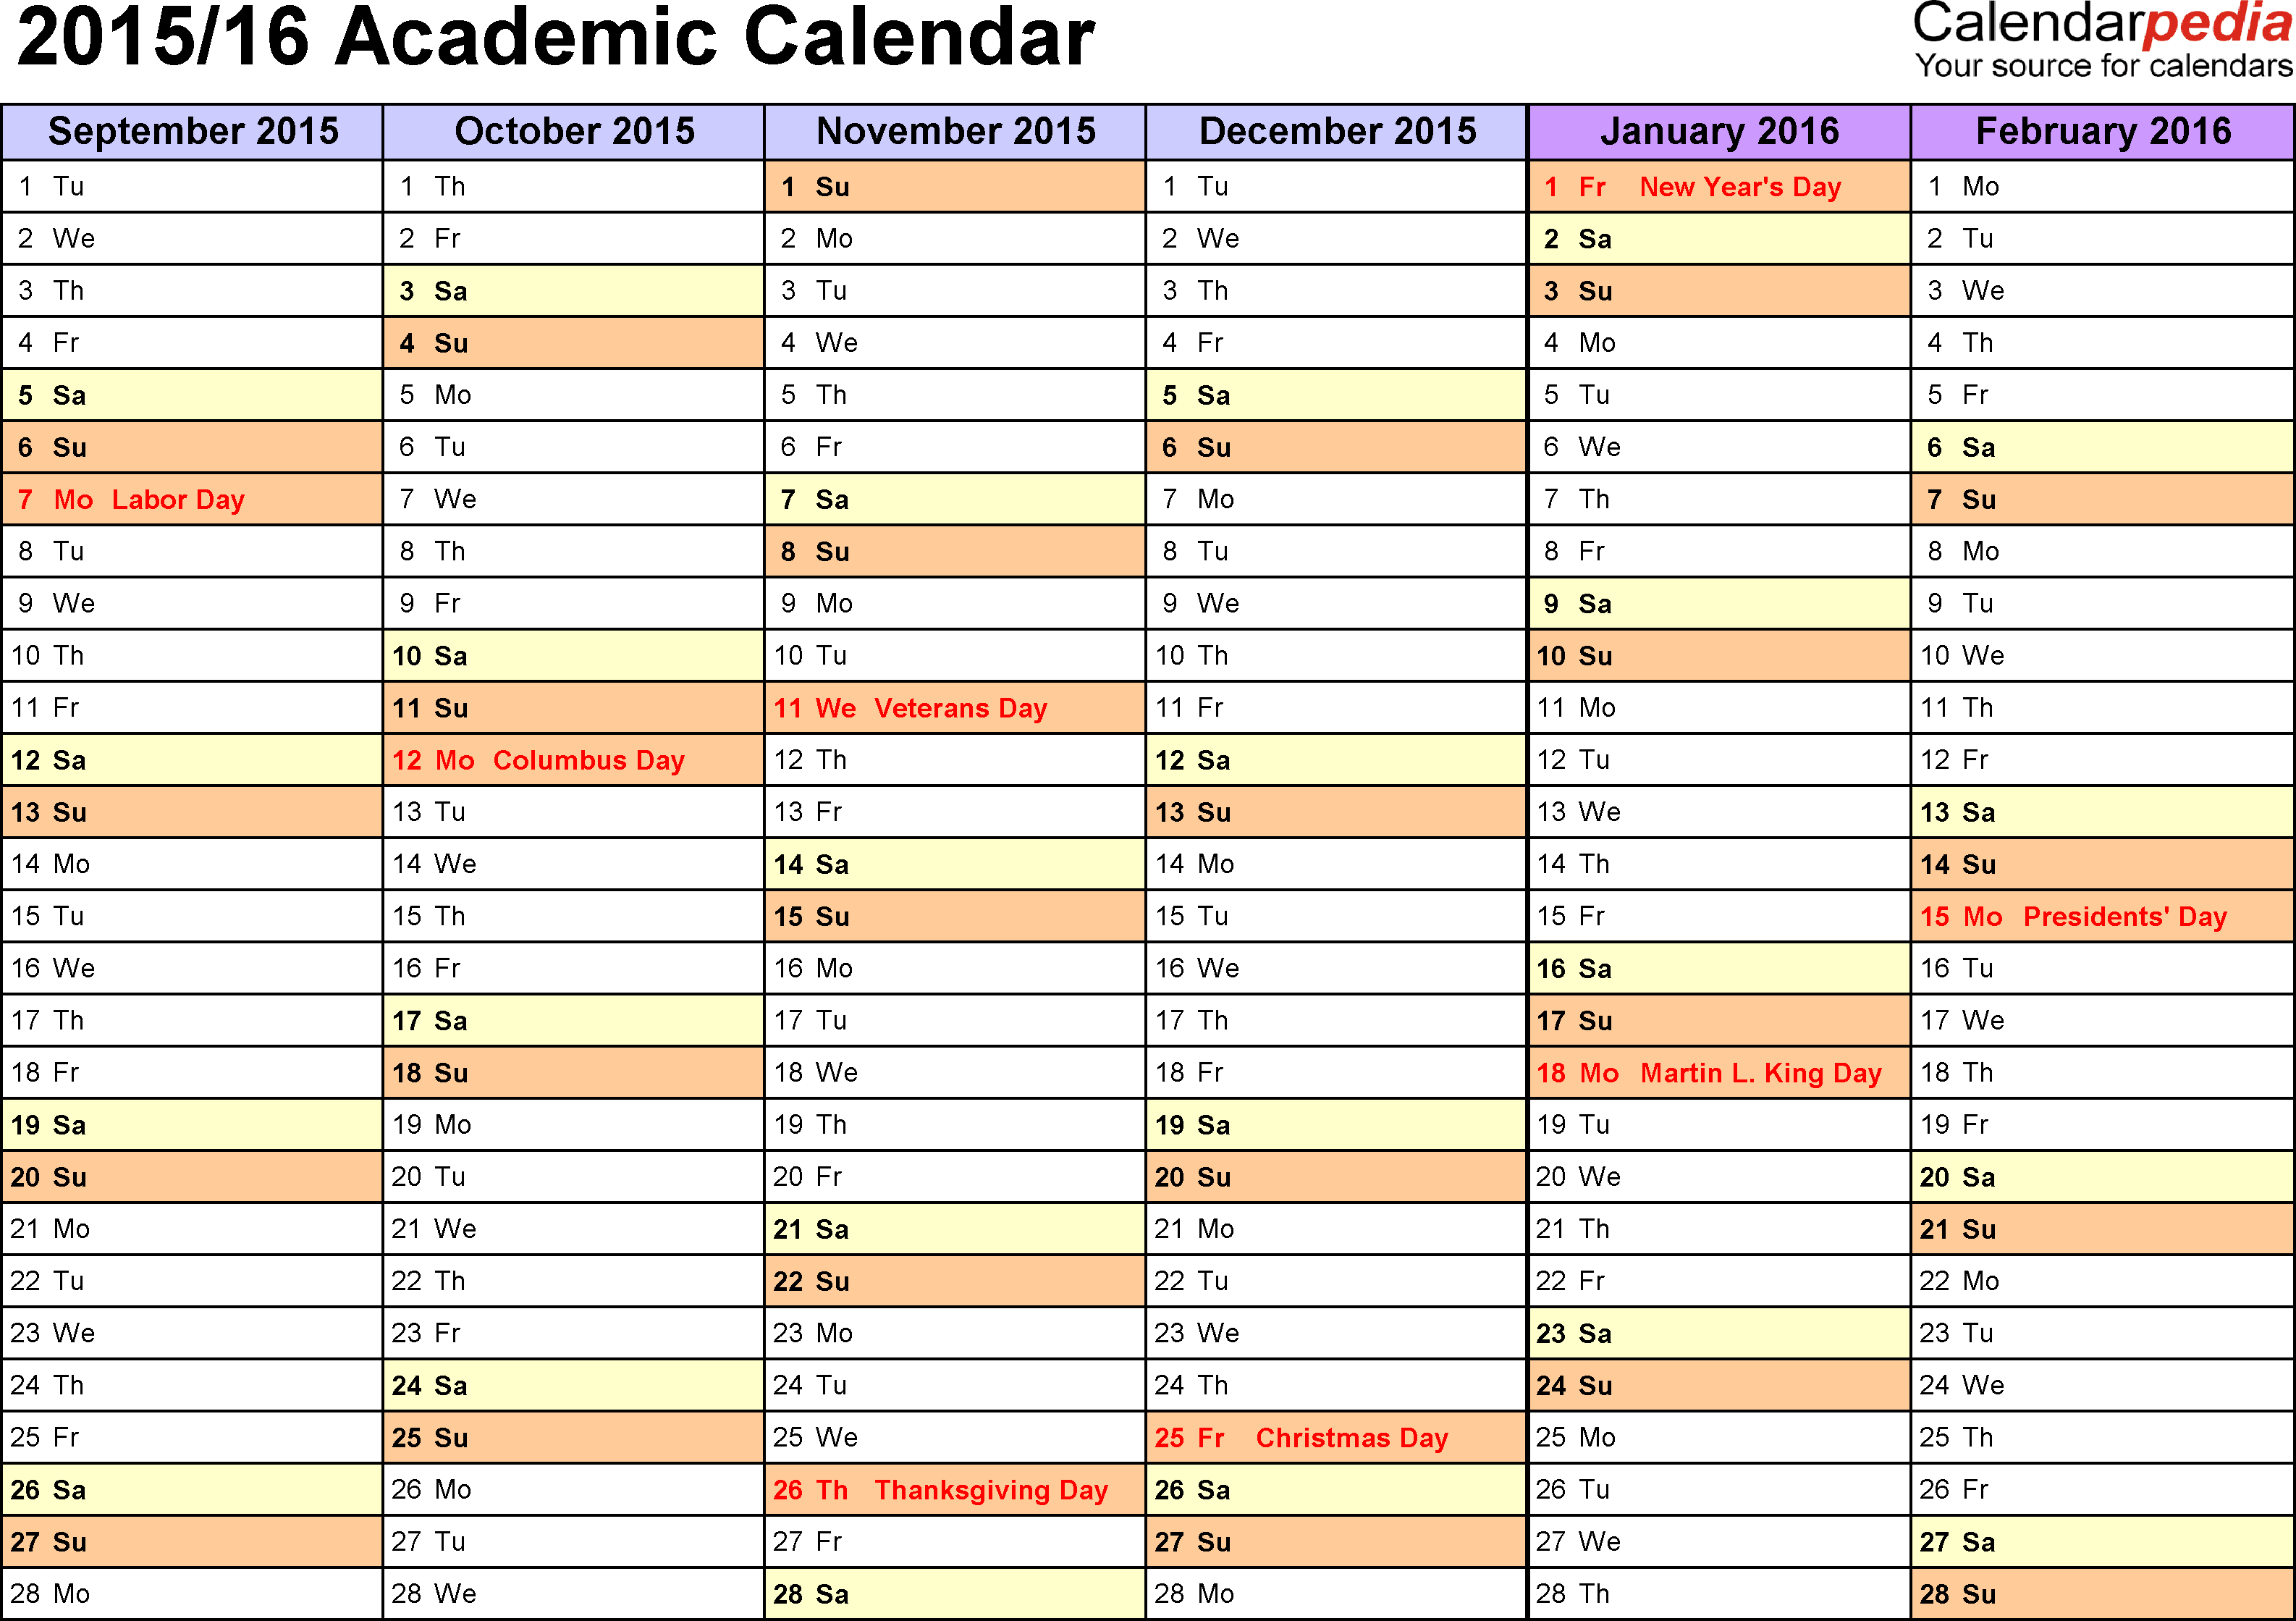 academic calendars 2015 2016 as free printable word templates academic planner calendar